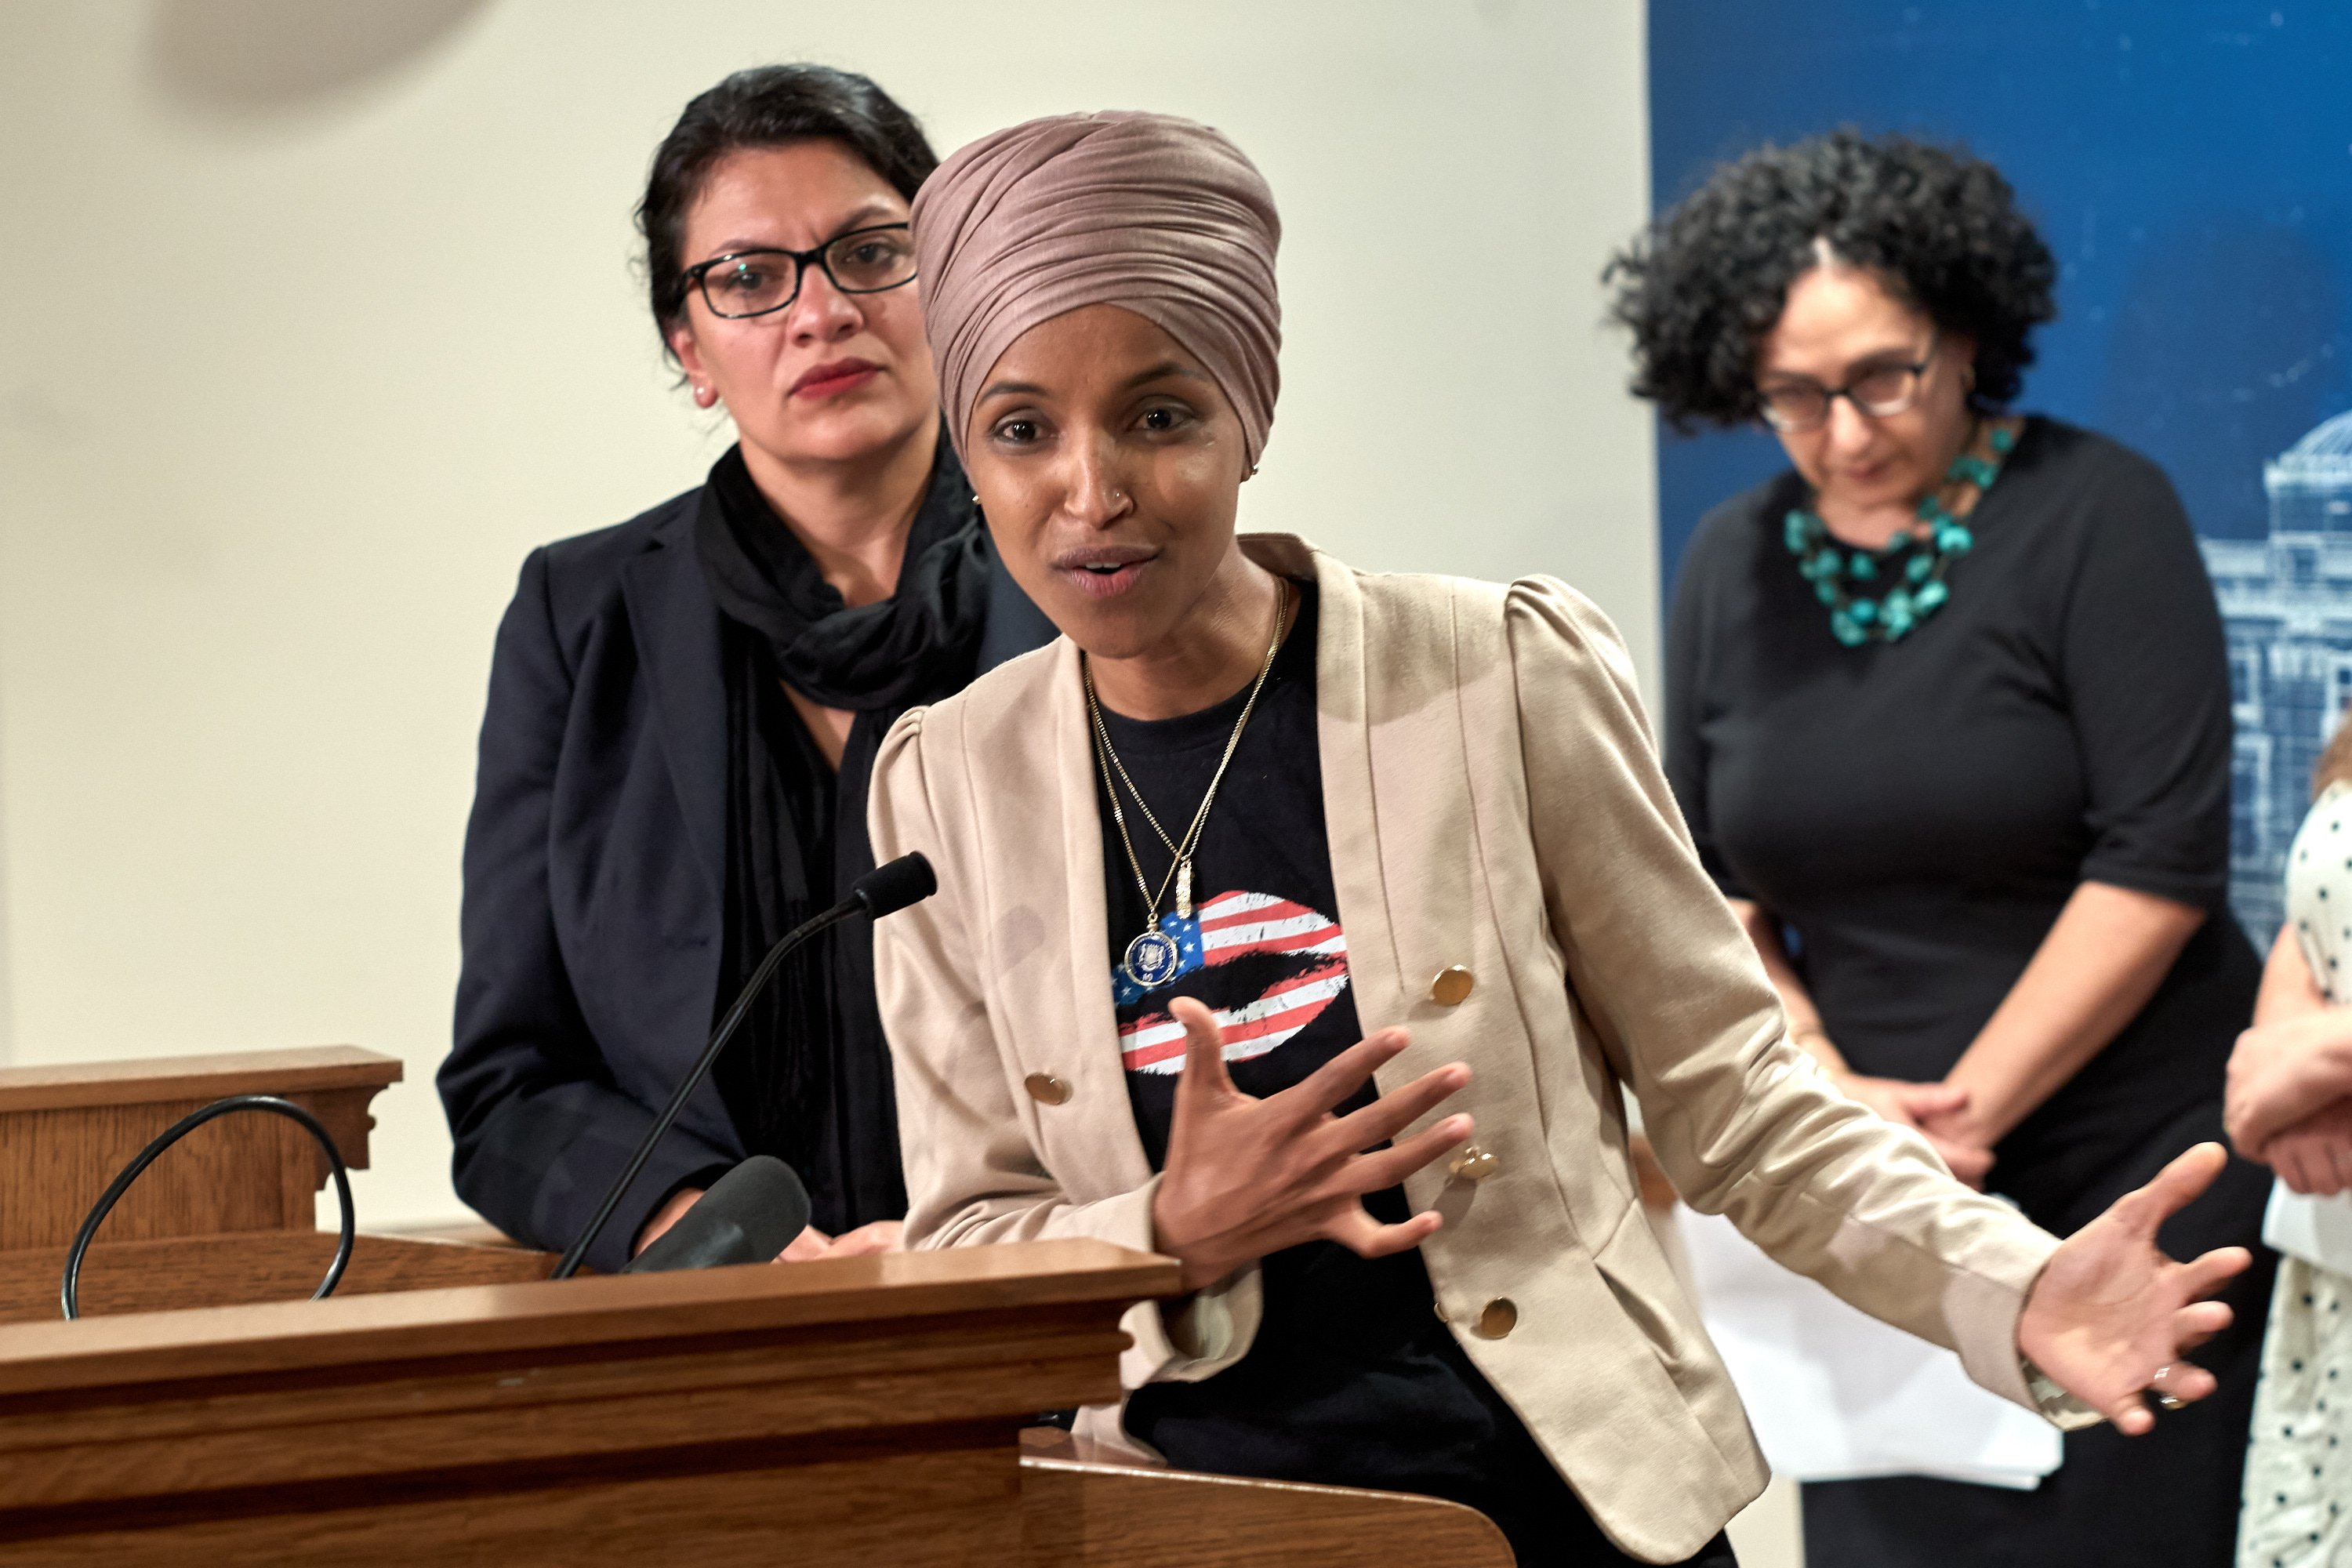 ST PAUL, MN - AUGUST 19: U.S. Reps. Ilhan Omar (D-MN) and Rashida Tlaib (D-MI) hold a news conference on August 19, 2019 in St. Paul, Minnesota. Israeli Prime Minister Benjamin Netanyahu blocked a planned trip by Omar and Tlaib to visit Israel and Palestine citing their support for the boycott, divestment, and sanctions (BDS) movement against Israel. (Photo by Adam Bettcher/Getty Images)